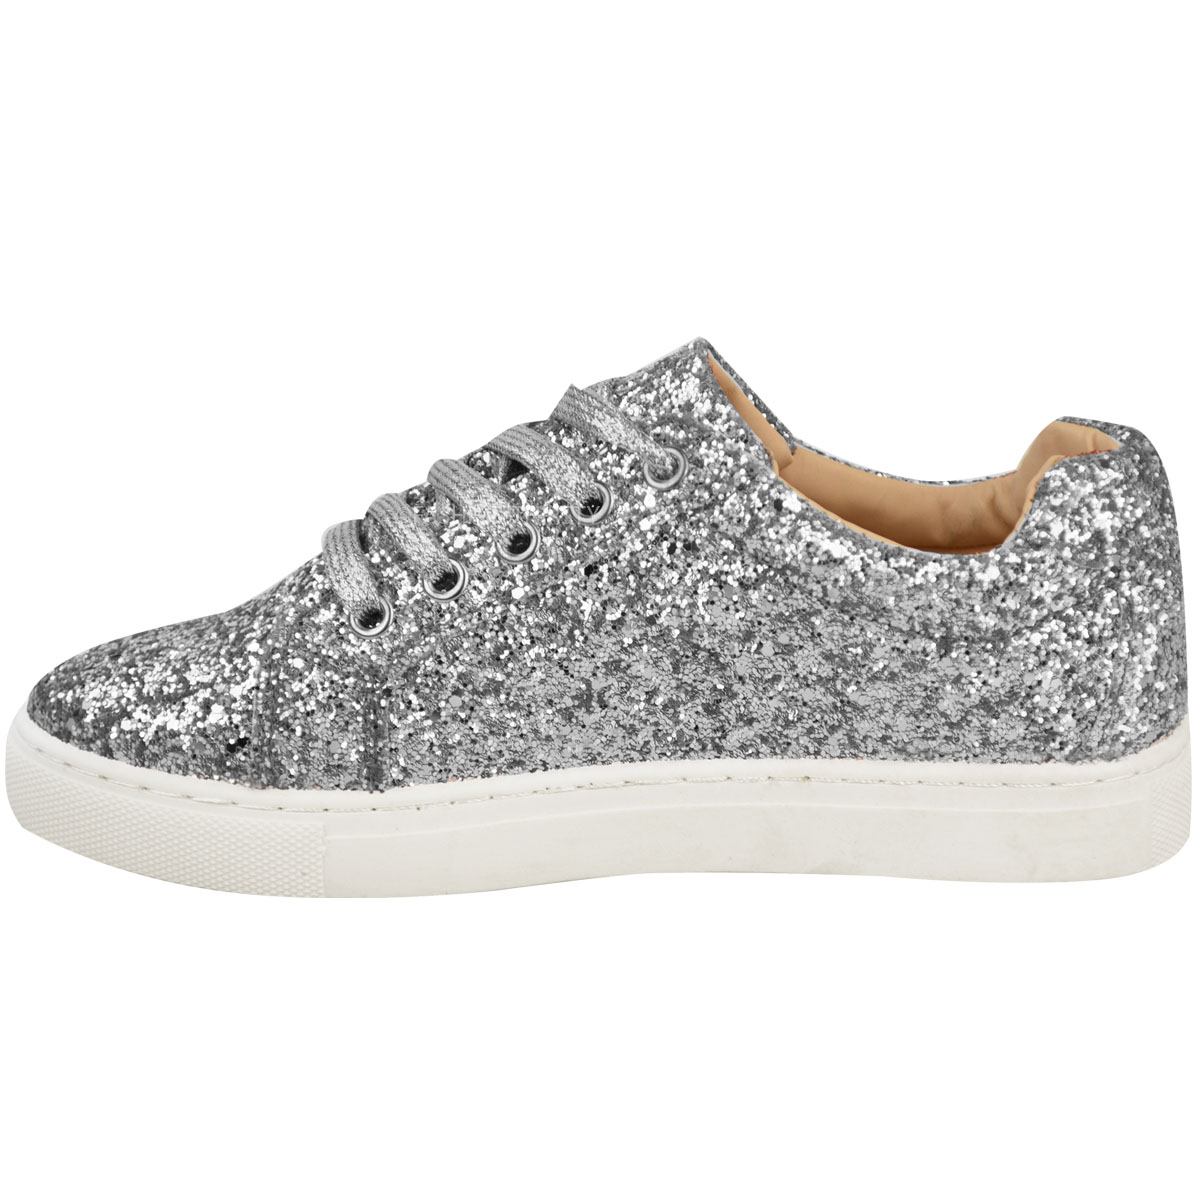 Ladies Sparkly Shoes Size